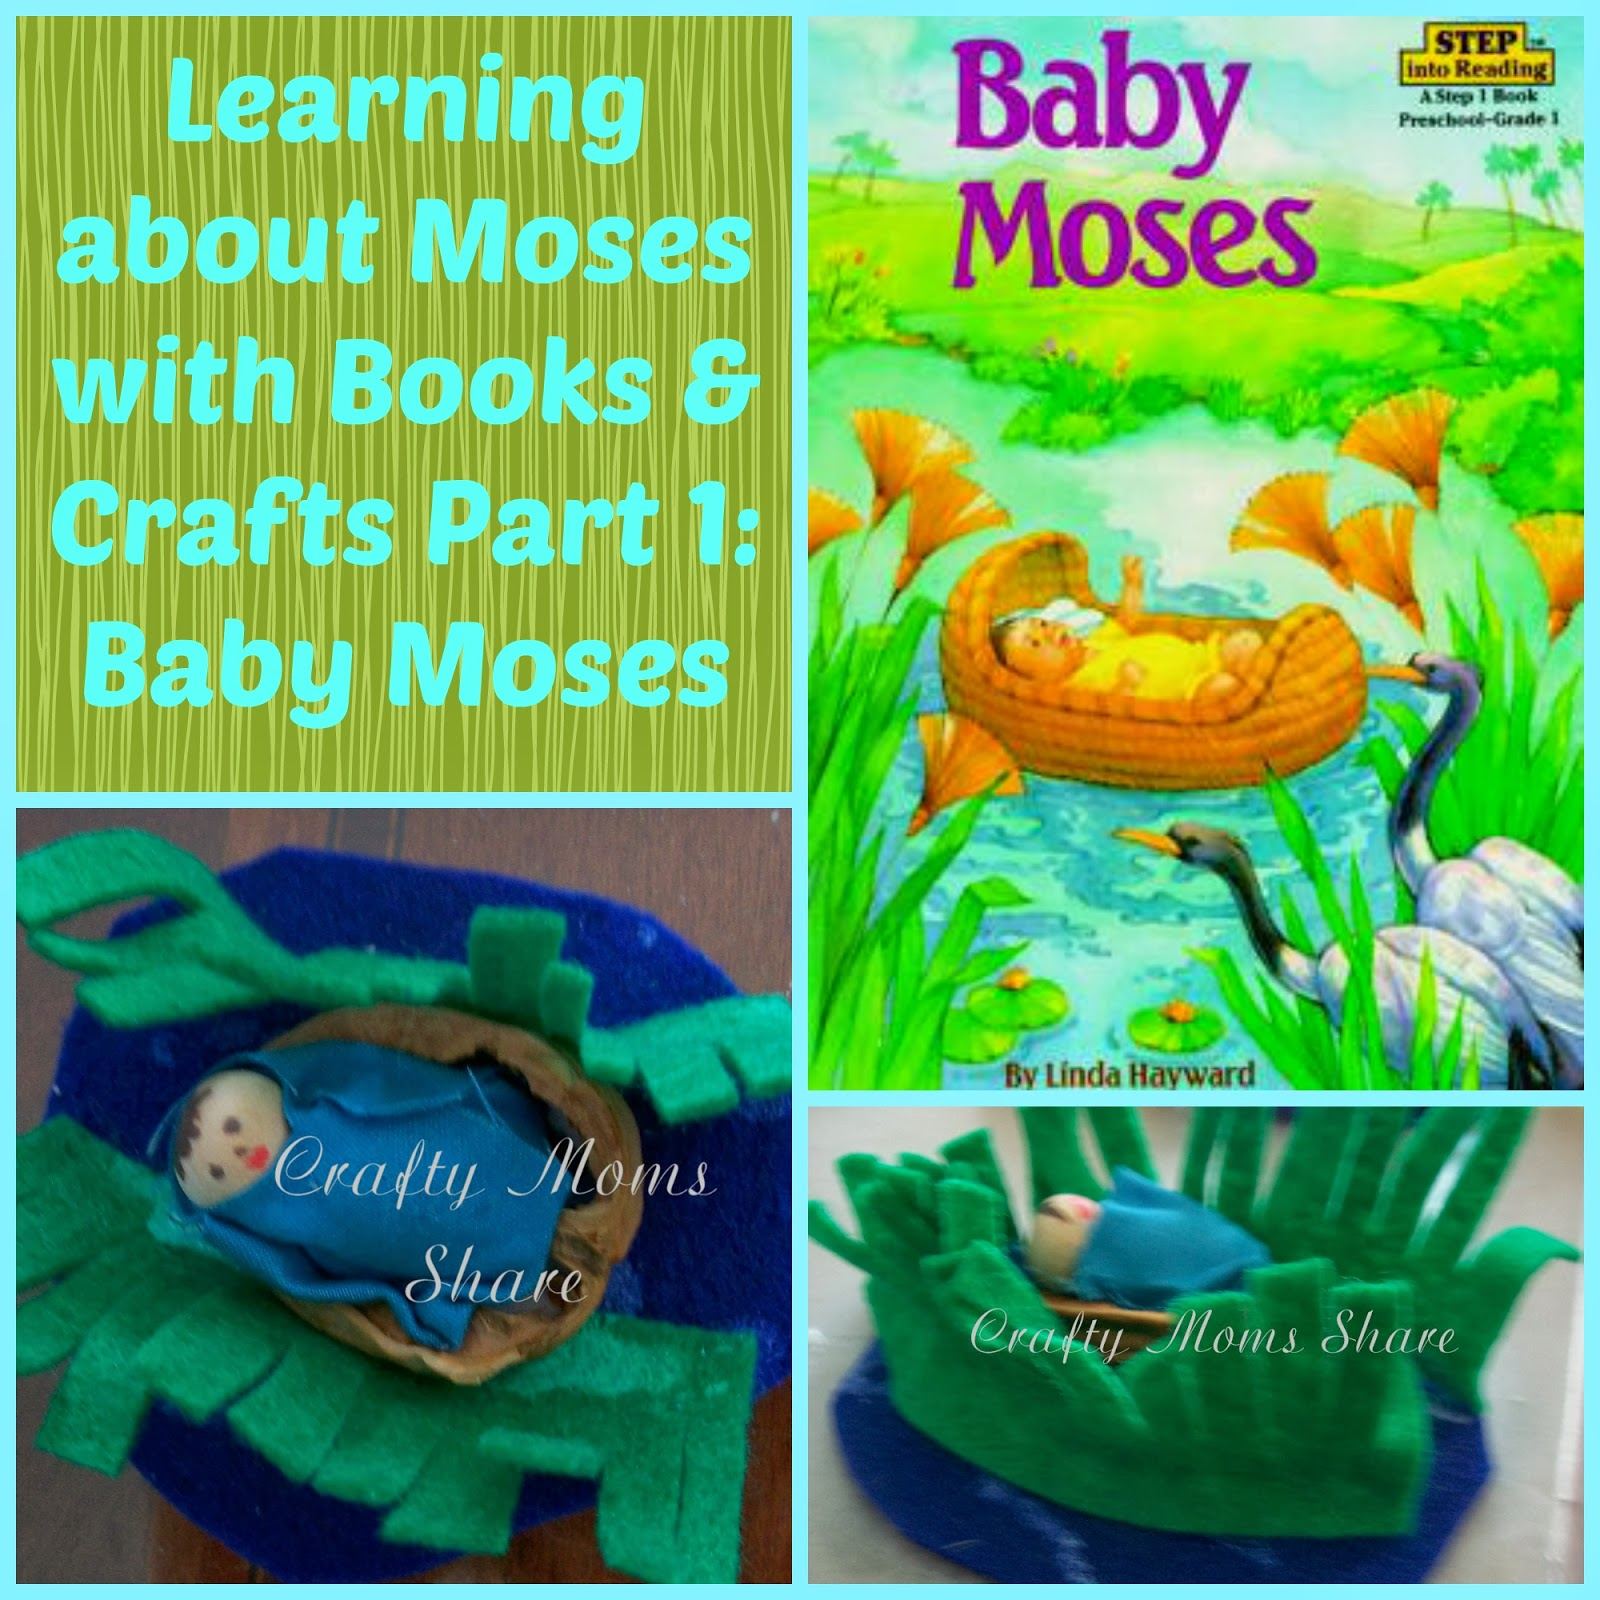 Crafty Moms Baby Moses Books and Craft